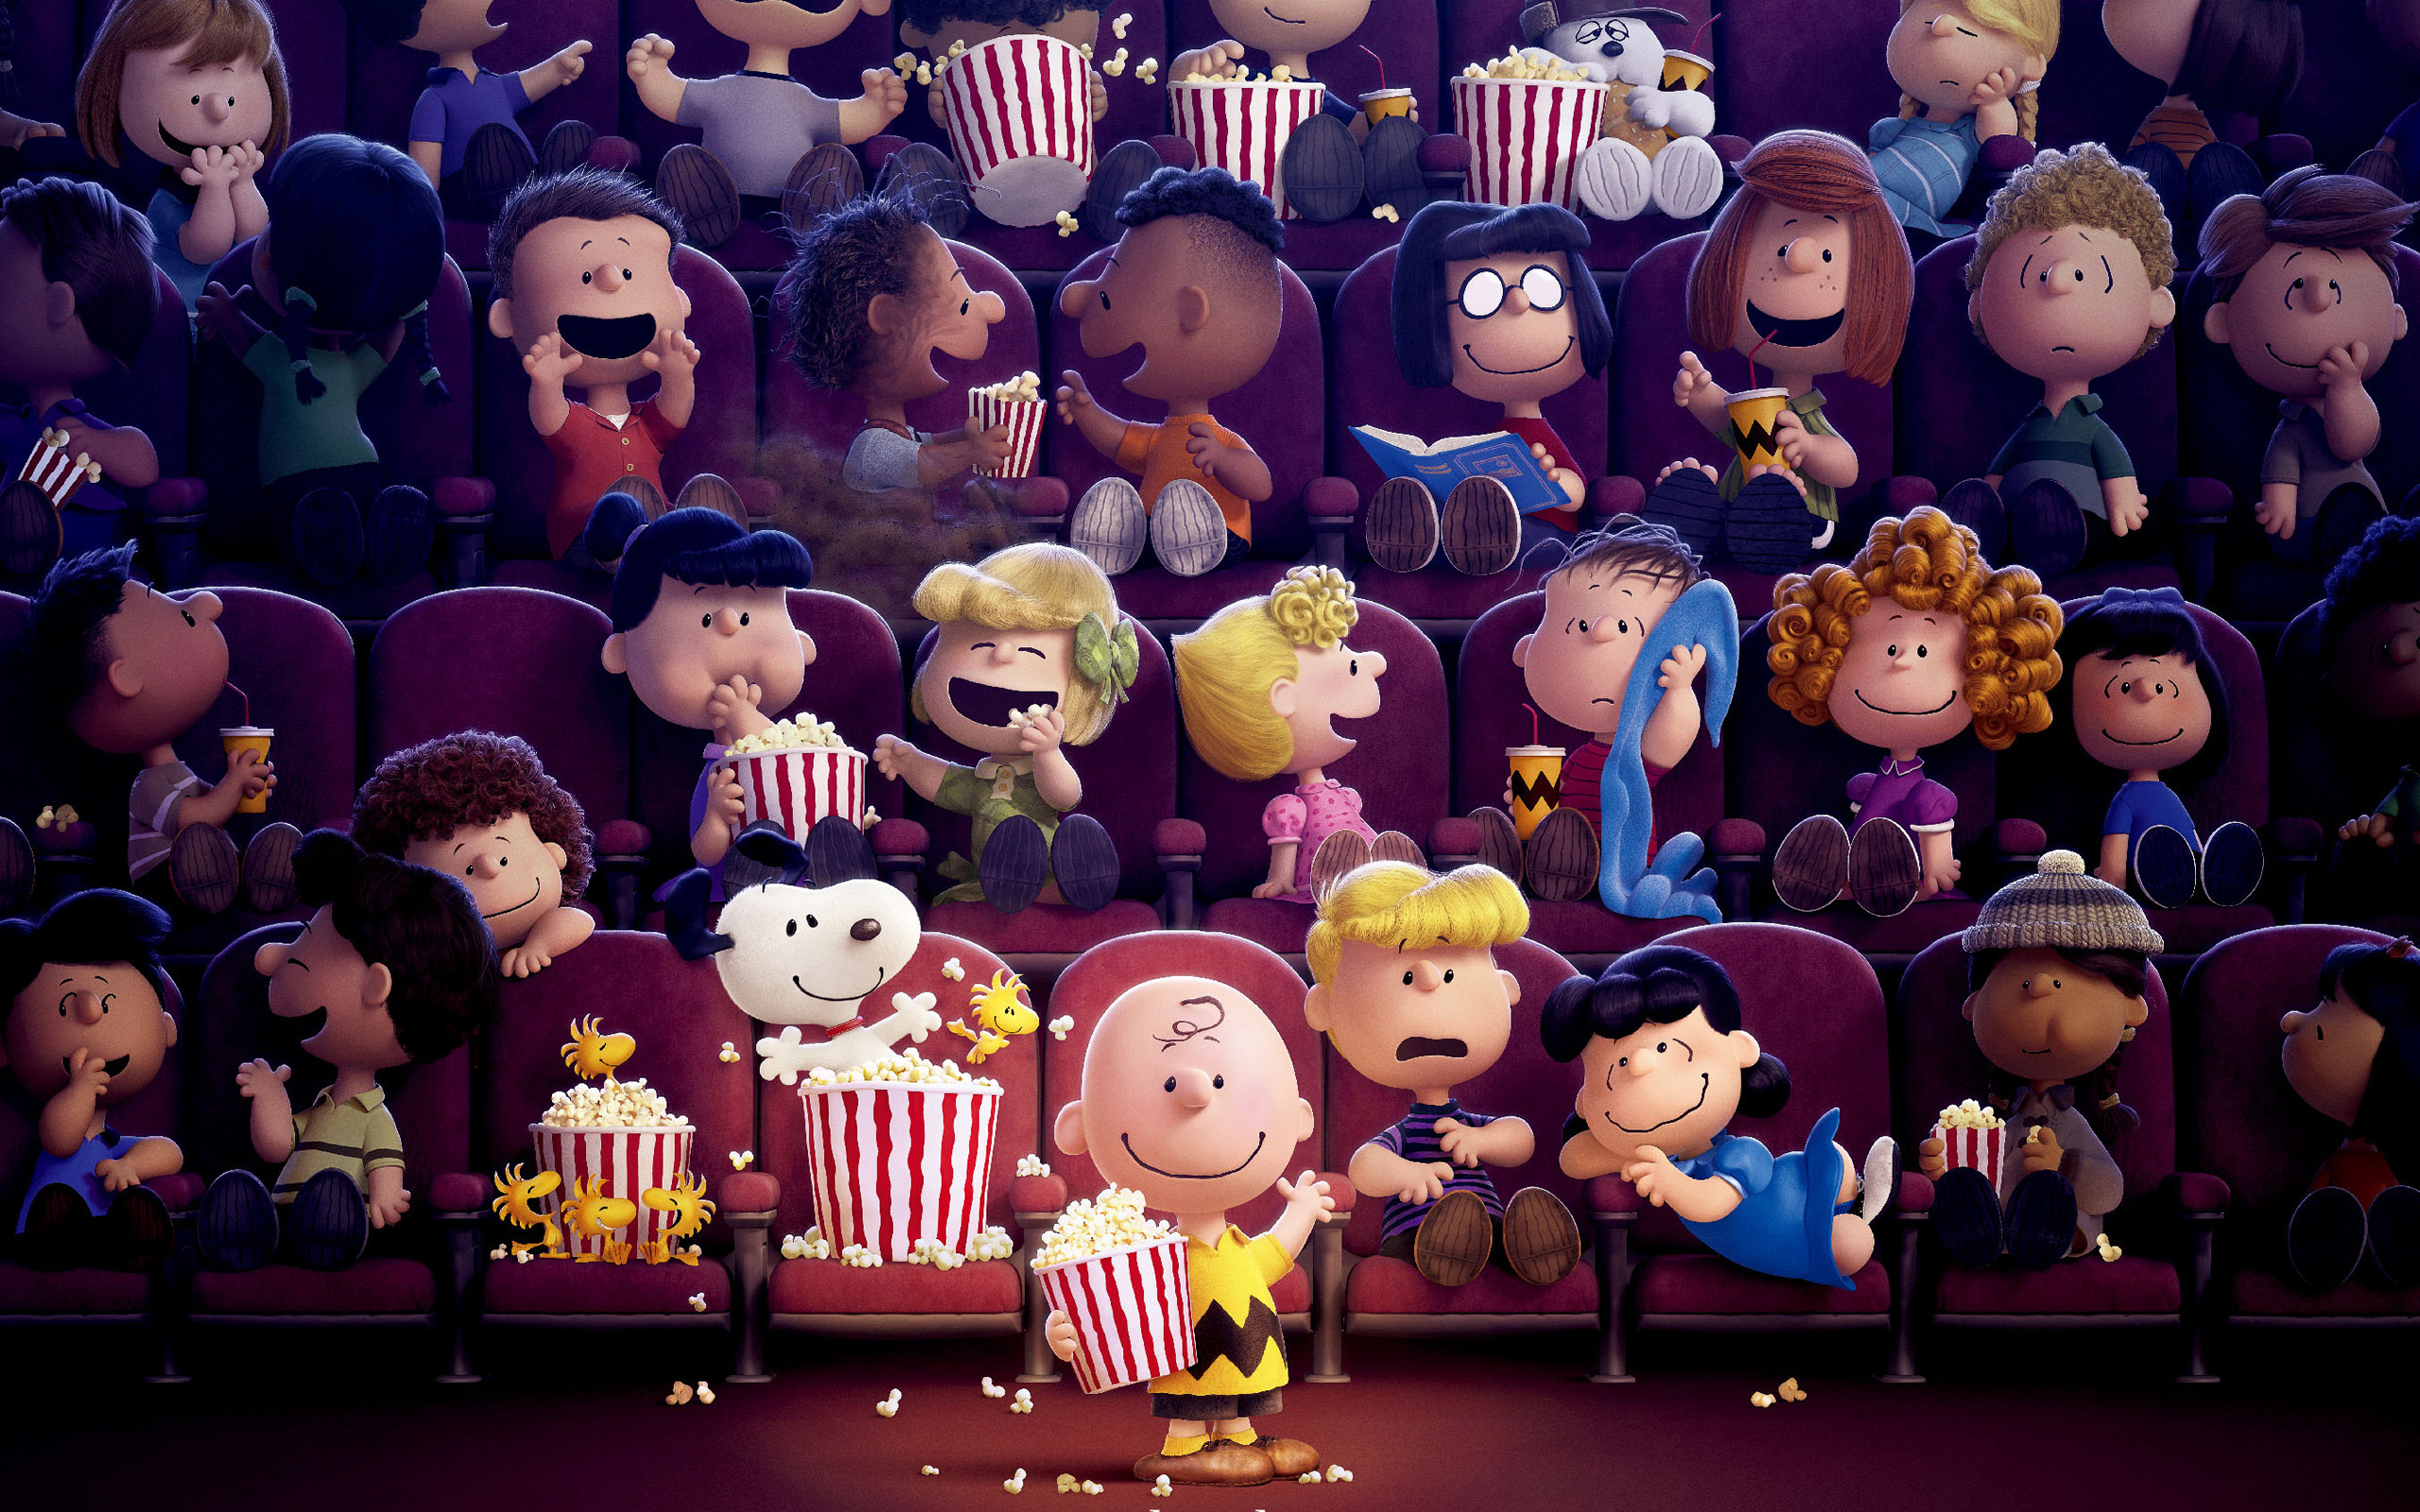 Related Wallpapers. The Peanuts Movie. The Peanuts Movie